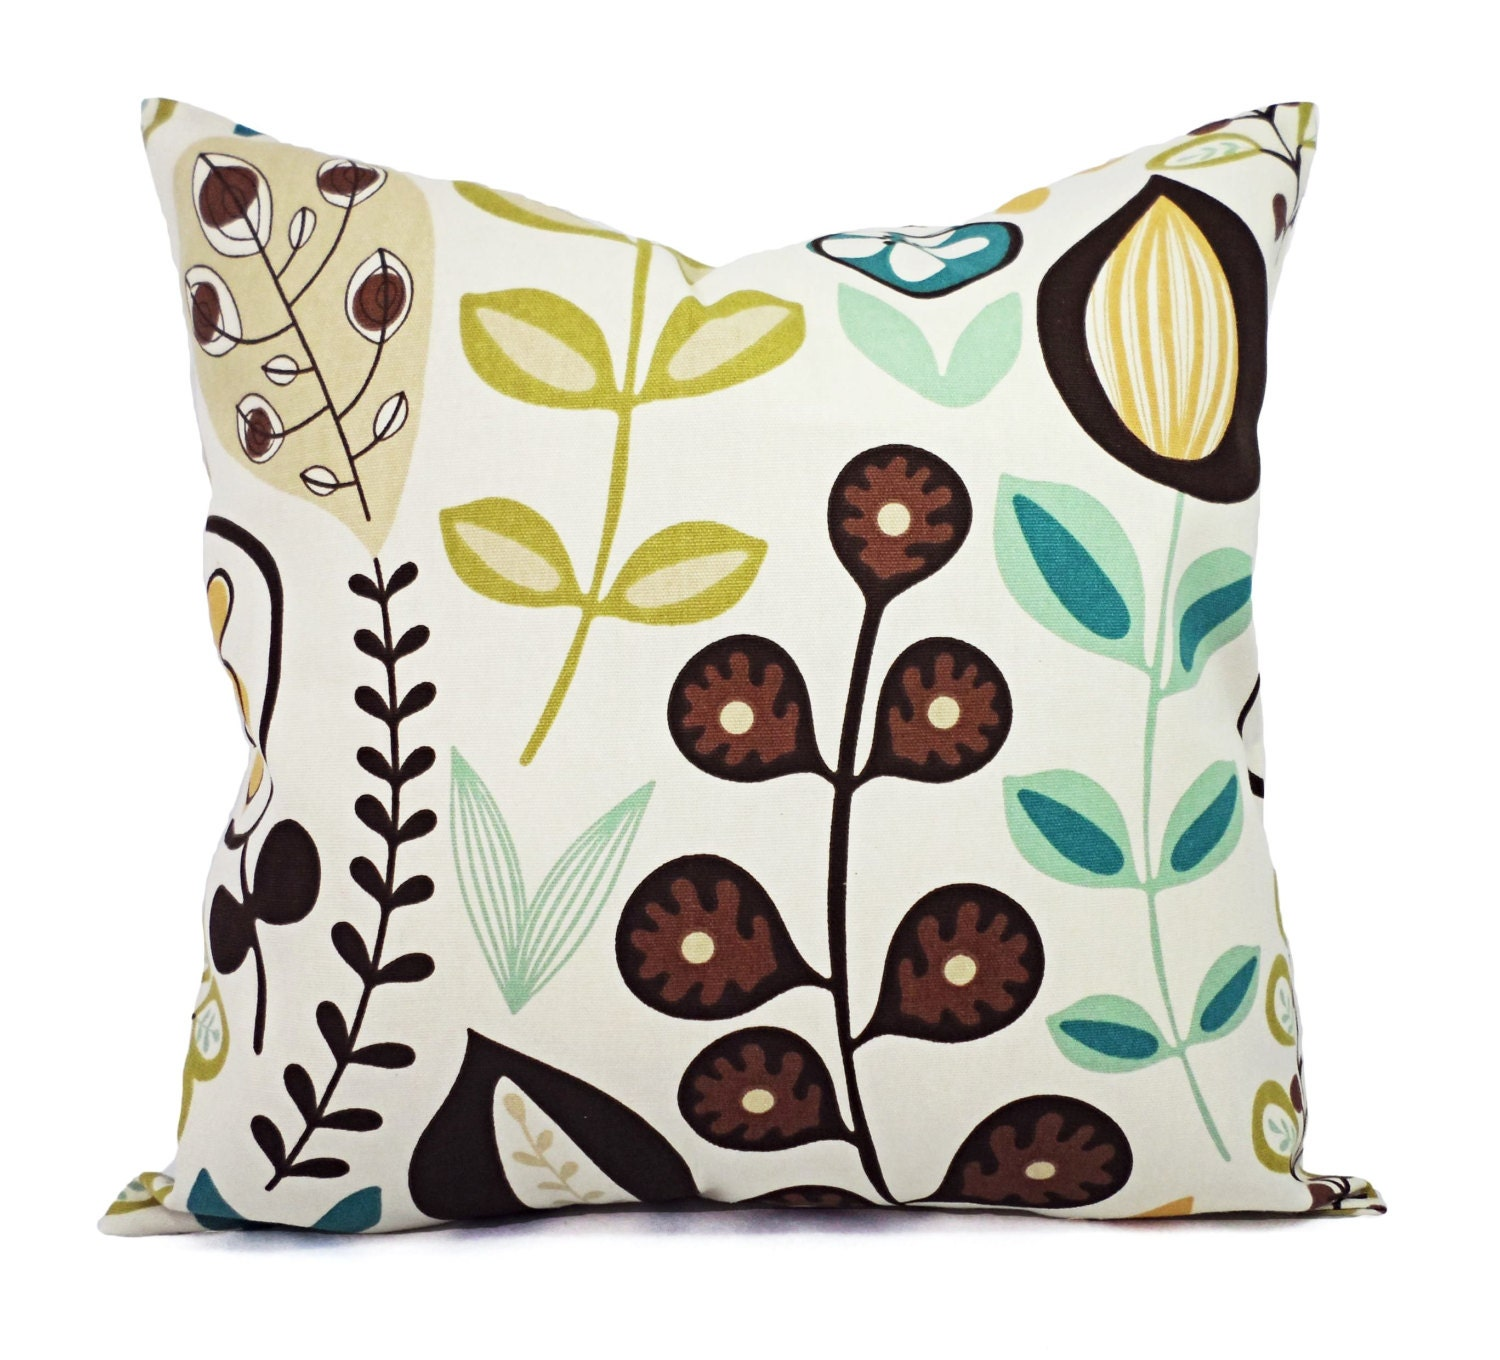 Pillow Covers Two Fun Floral Throw Pillow Covers Cream